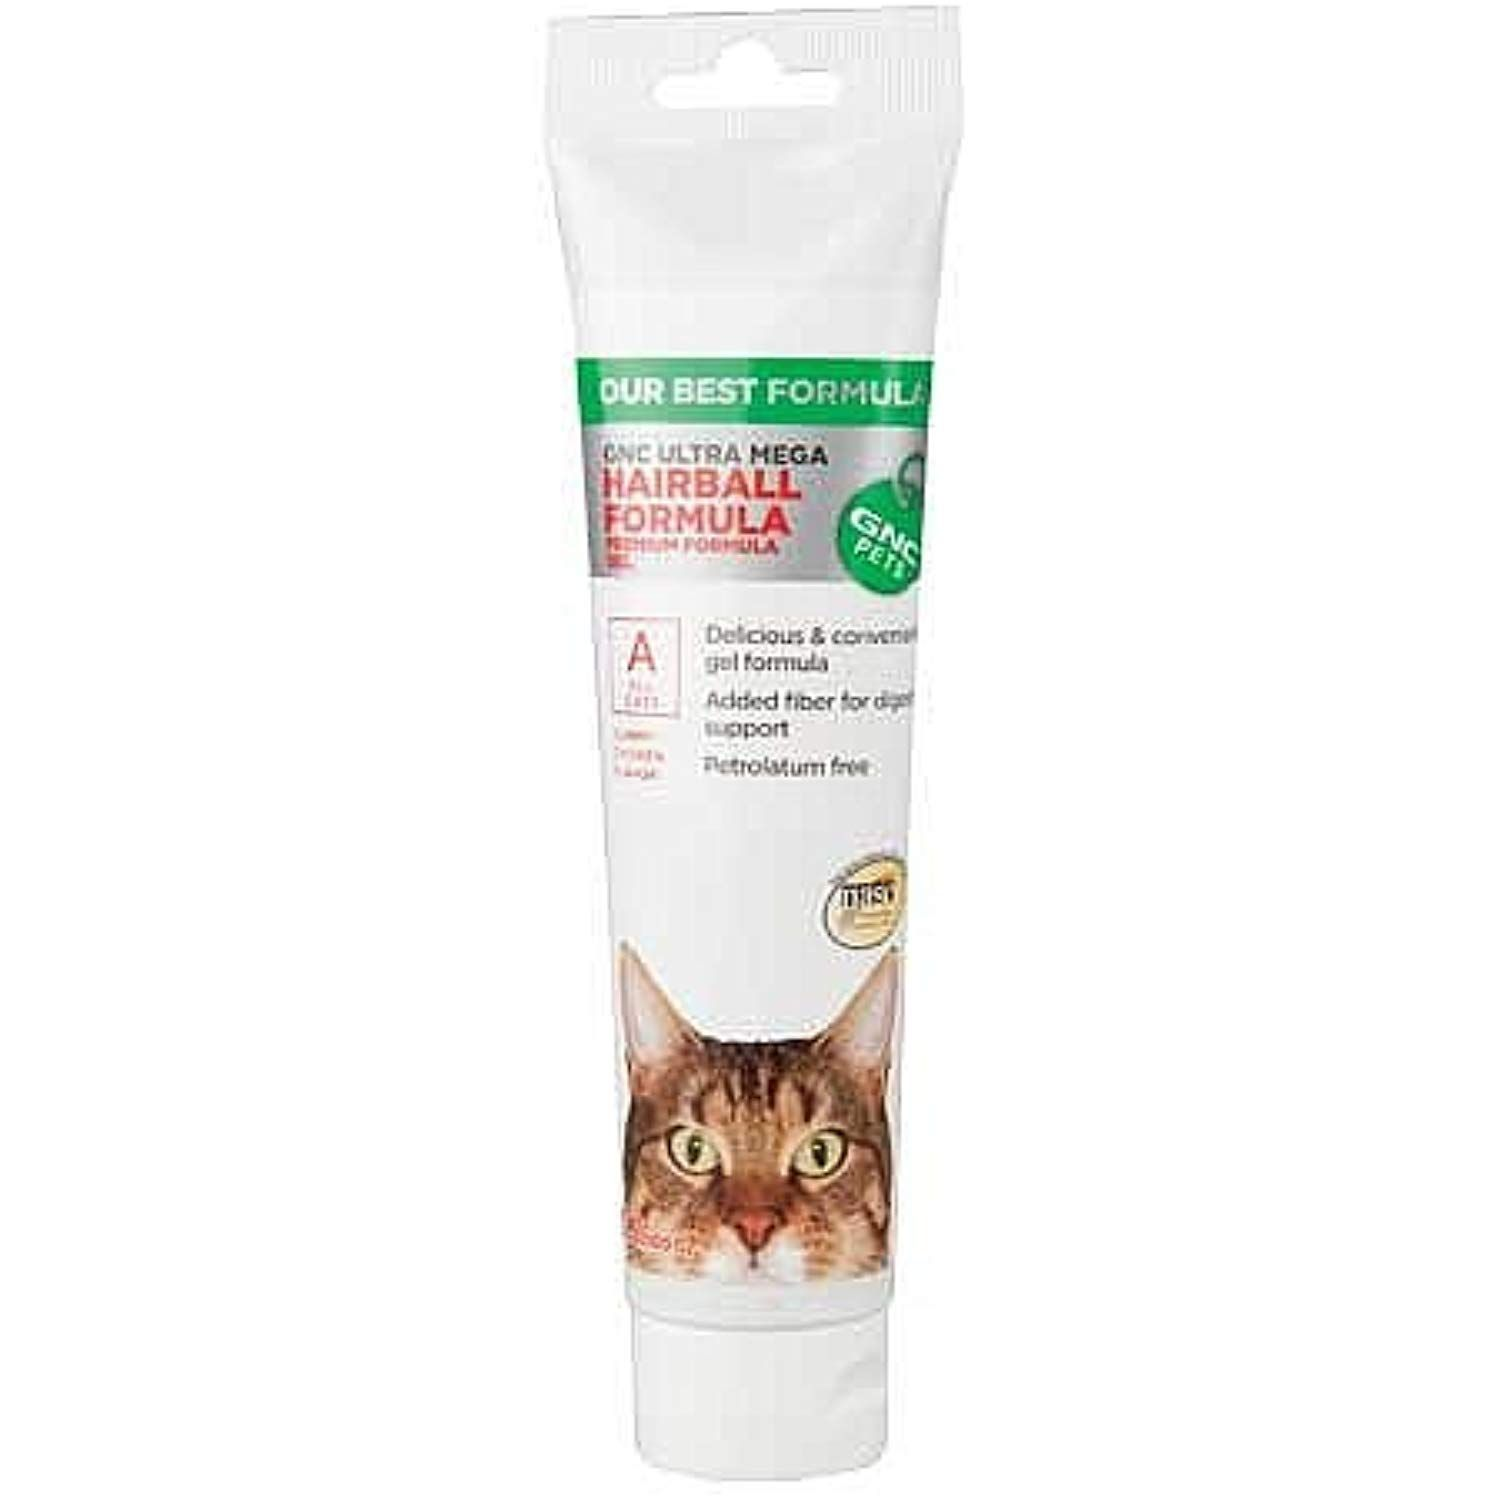 Gnc Pets Ultra Mega Hairball Formula For All Cats Chicken Flavor 3 5 Oz For More Information Visit Image Link This I Cat Health Cat Care Tips Cat Fleas